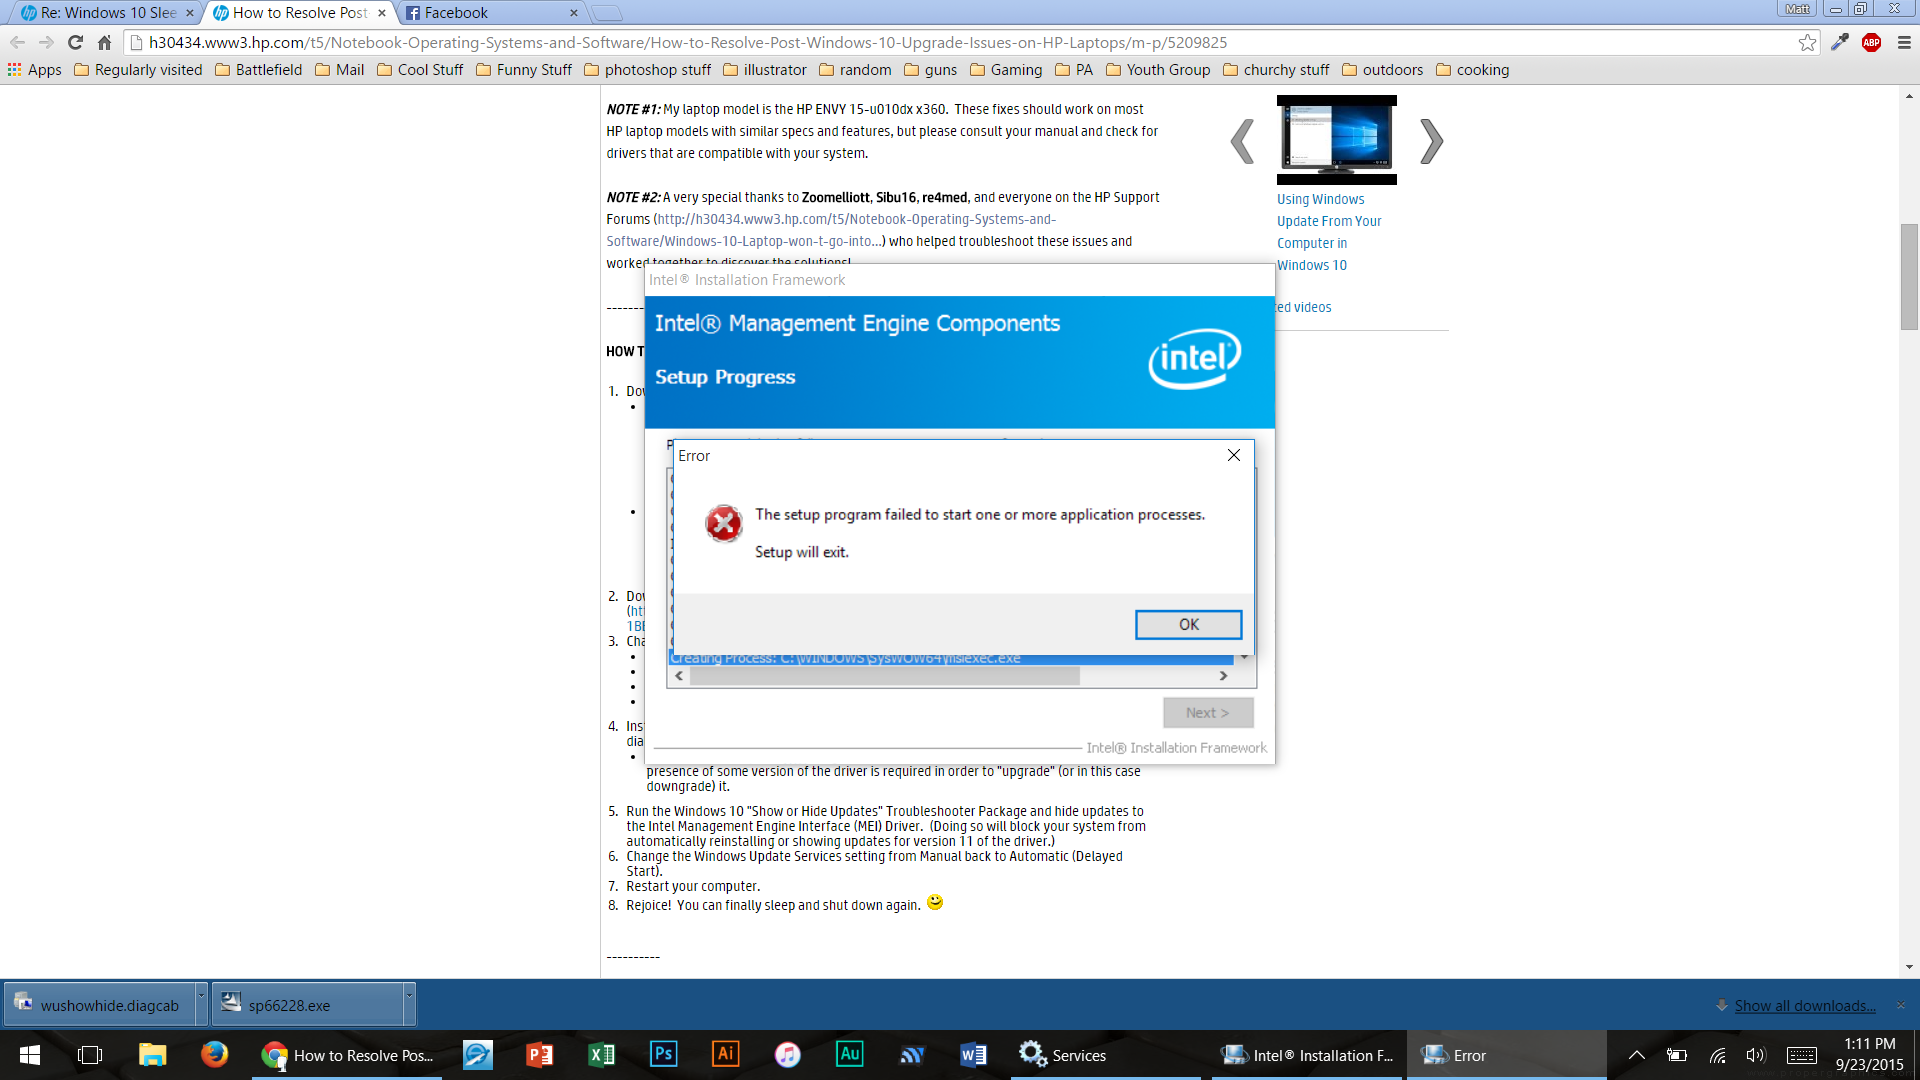 Windows 10 Sleep Mode Causes Pc To Become Unresponsive Hp Support Forum  5171827 How To Enable